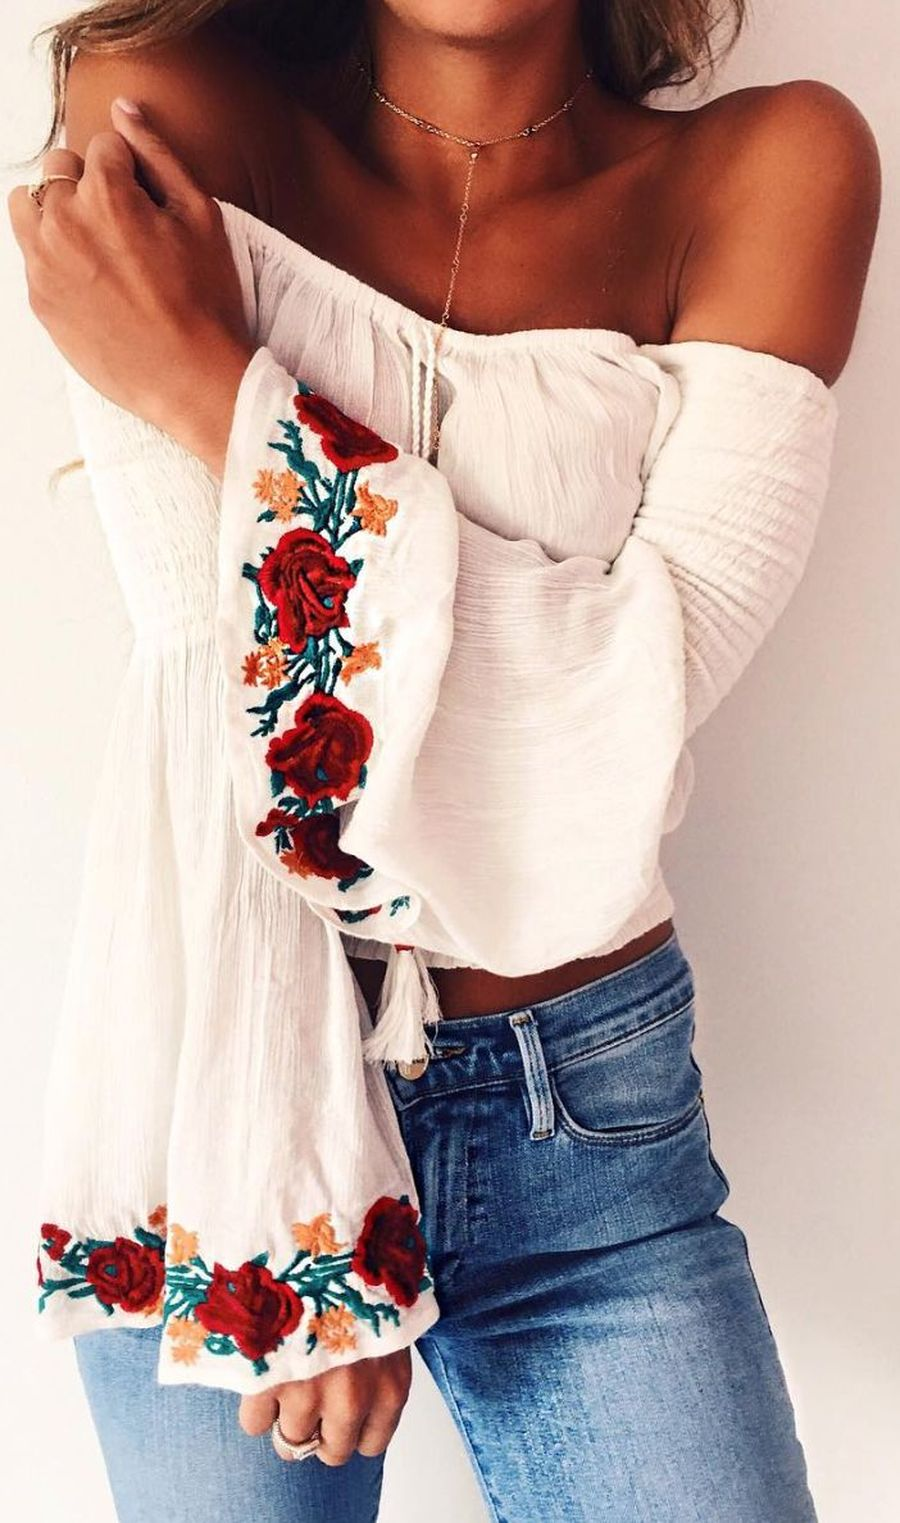 Boho dress for holiday and vacation outfits 8